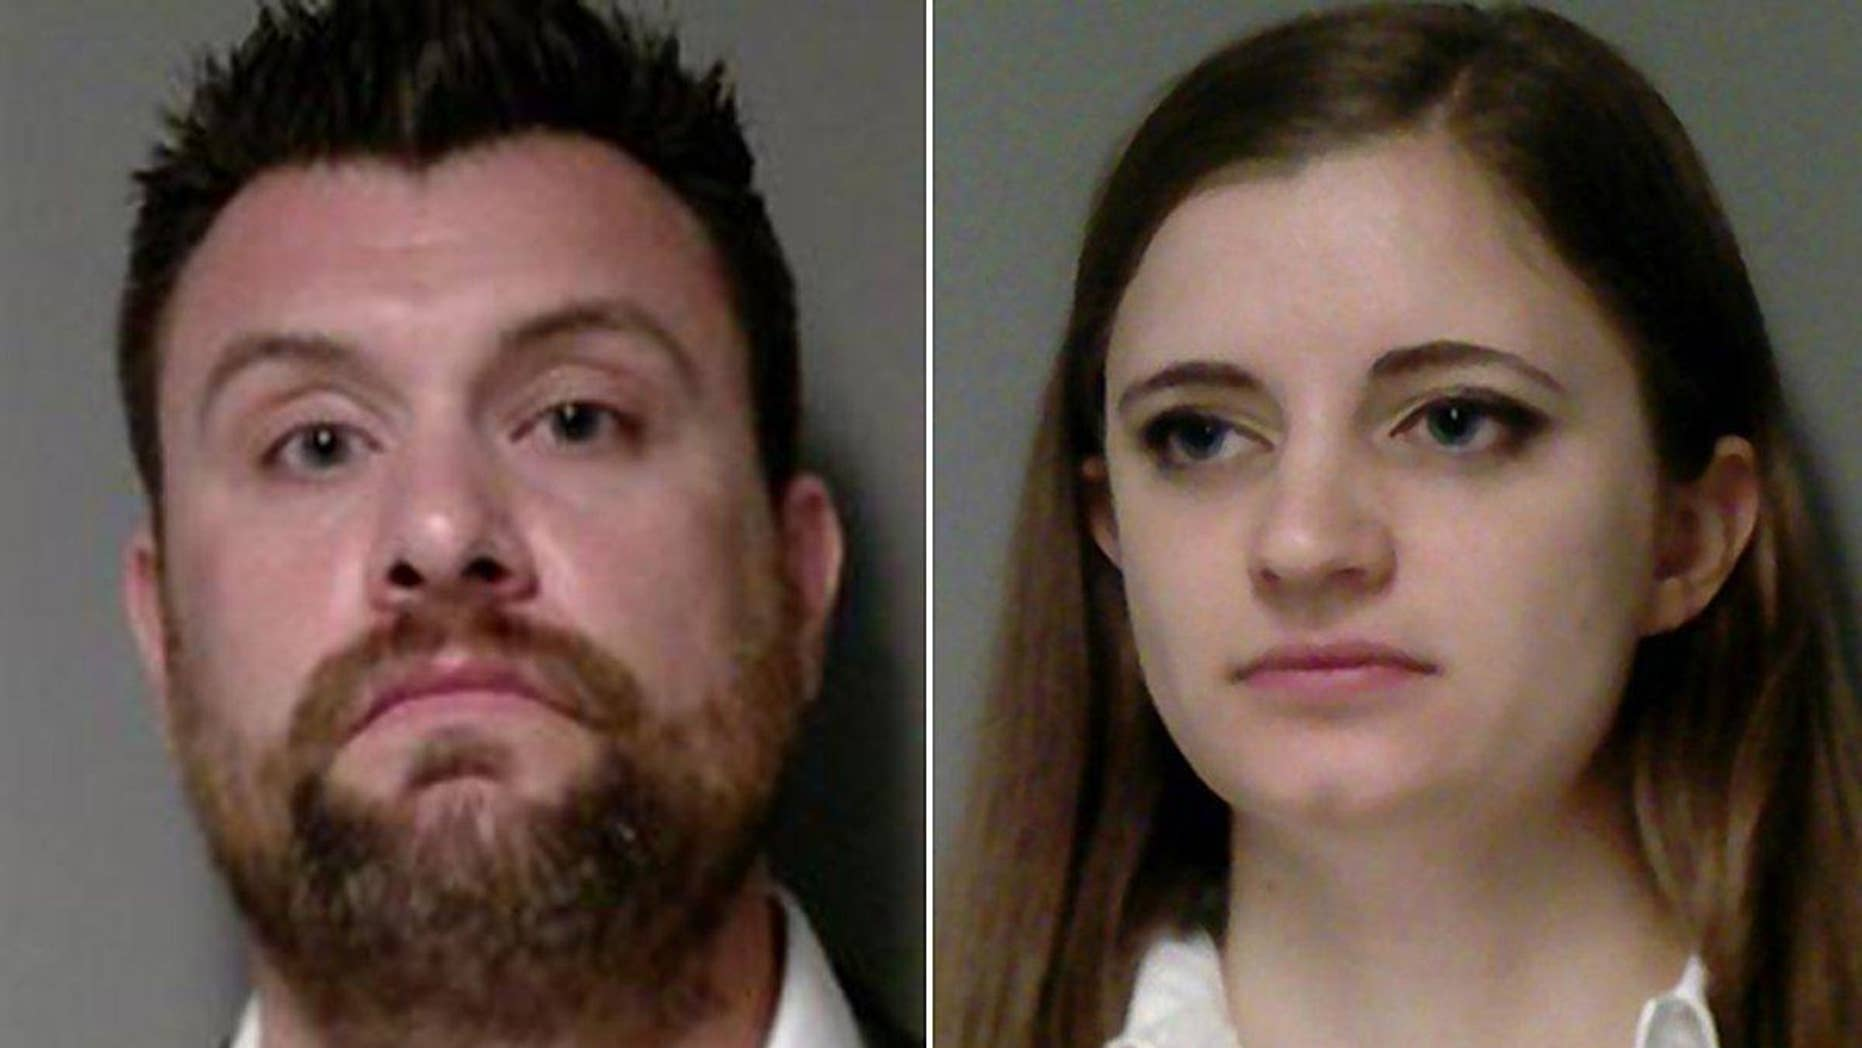 Joshua Piland, 36, and Rachel Joy Piland, 30, were charged with involuntary manslaughter.